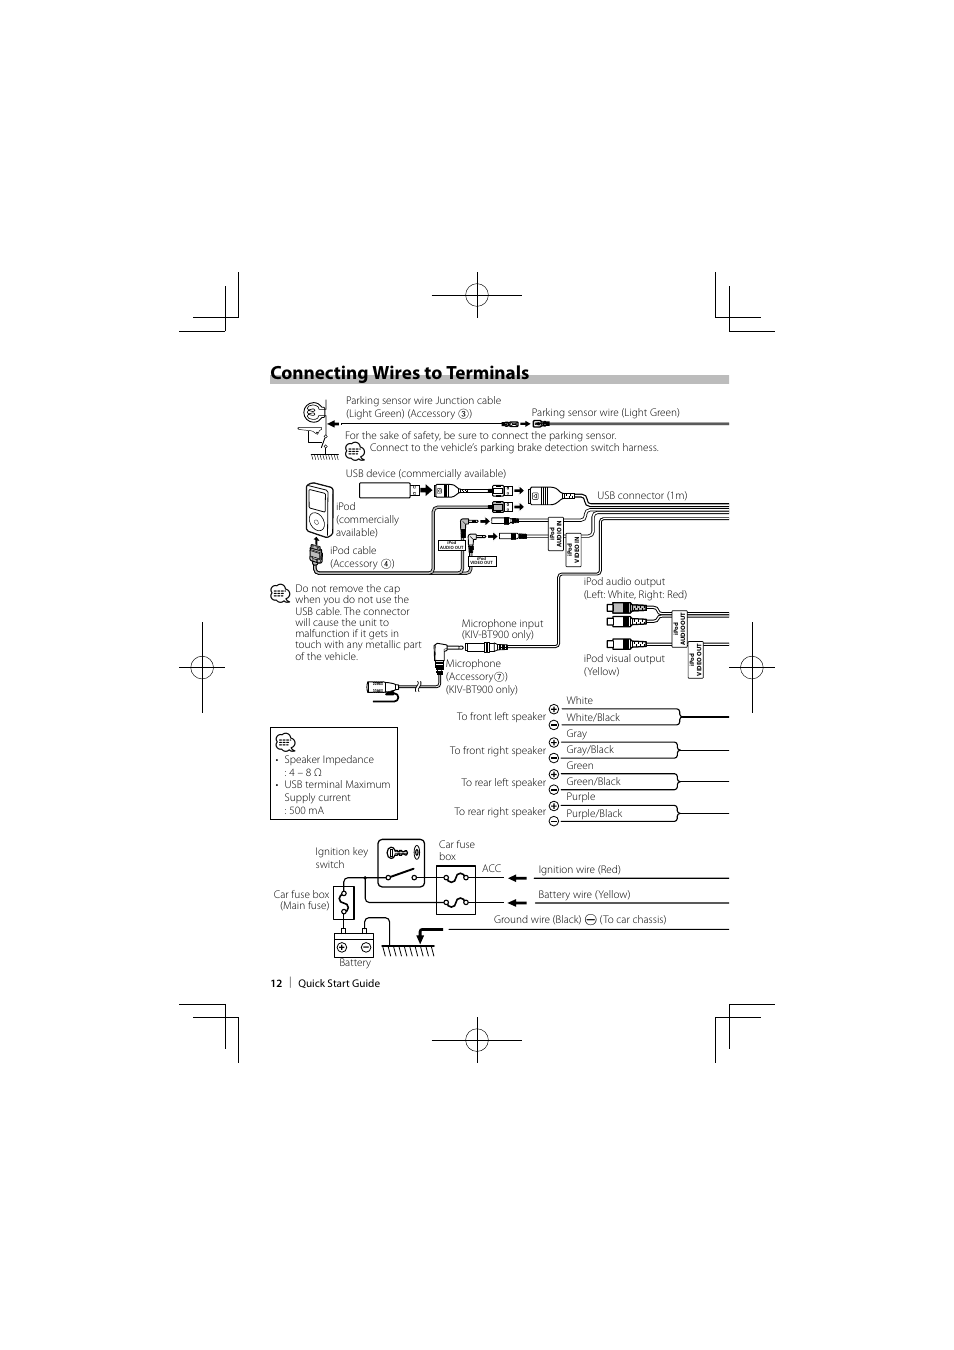 hight resolution of kenwood bt900 wiring diagram schema wiring diagrams kenwood cd player wiring diagram connecting wires to